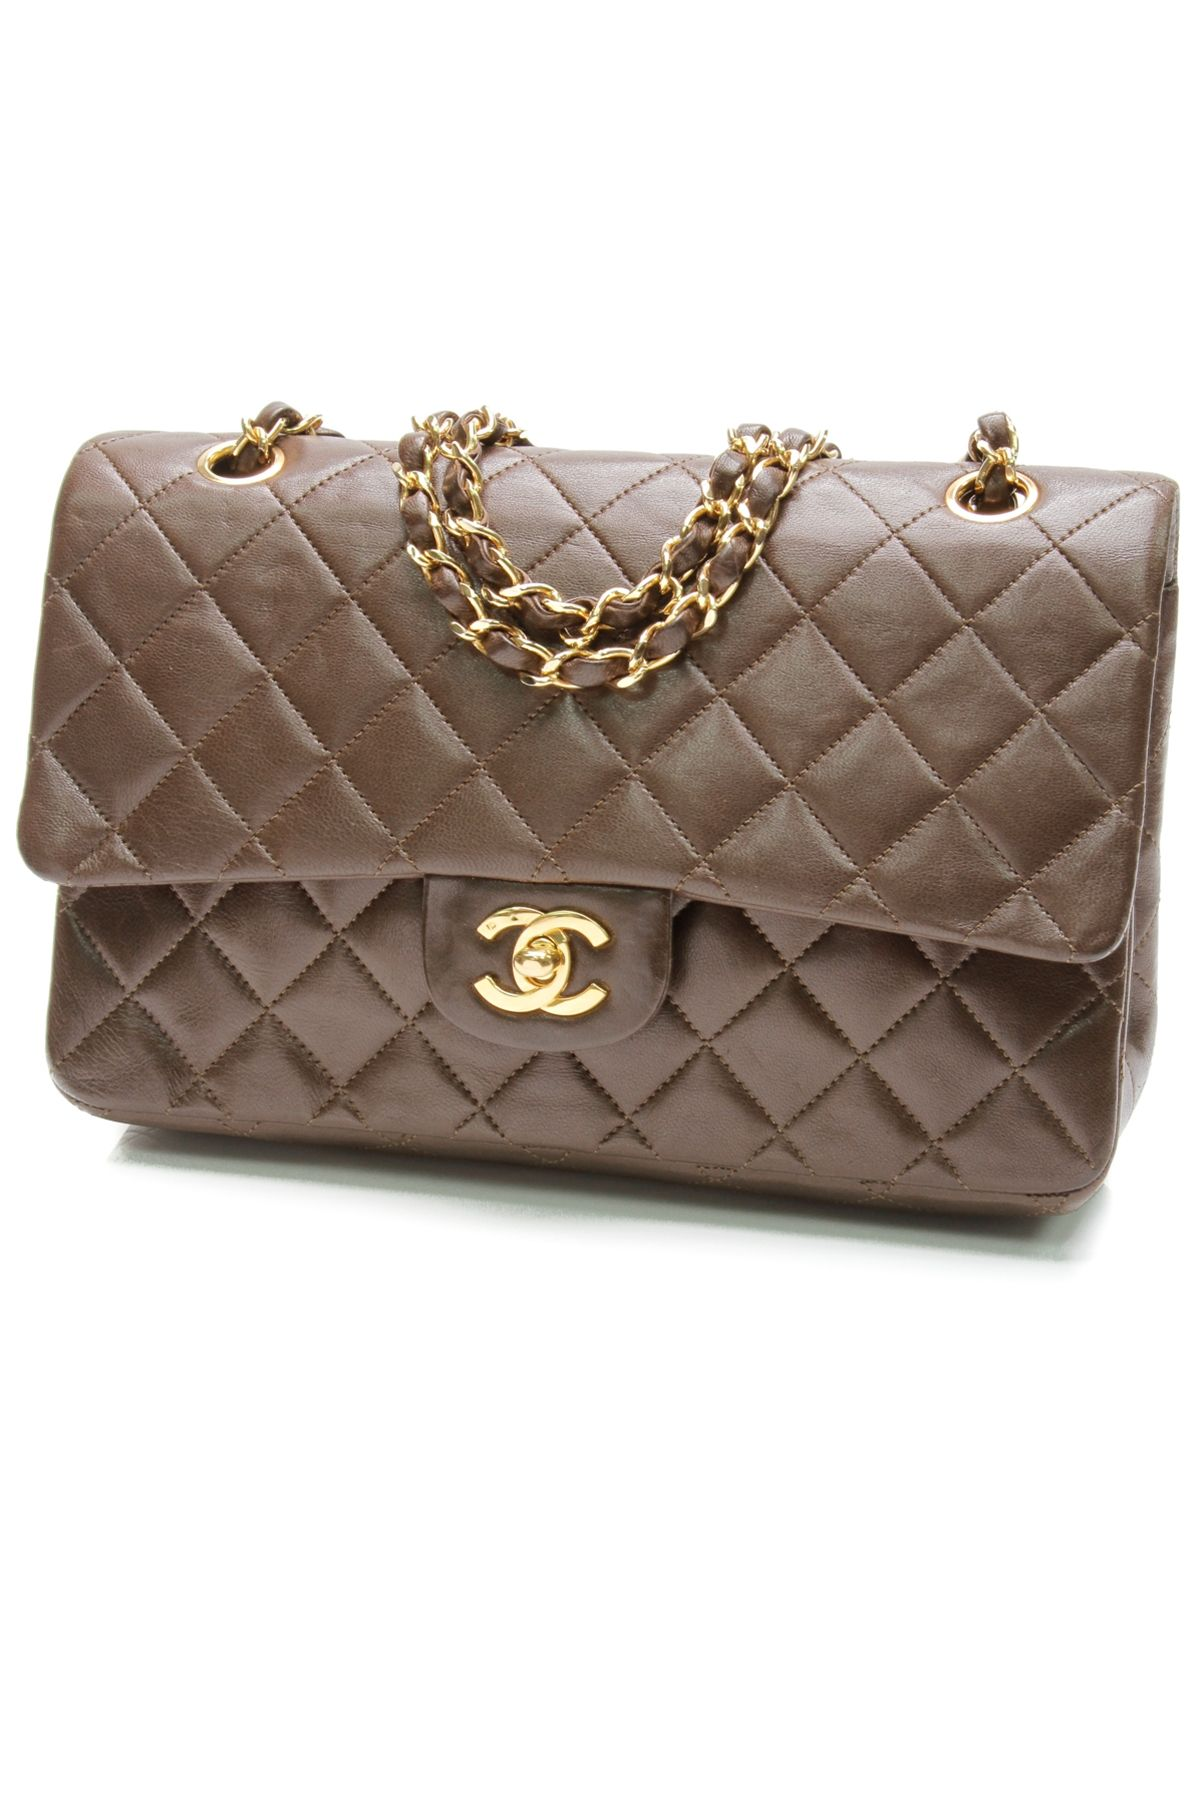 Chanel Vintage Brown Quilted Lambskin Classic Medium Double Flap Bag ... f61f9ef3a2666